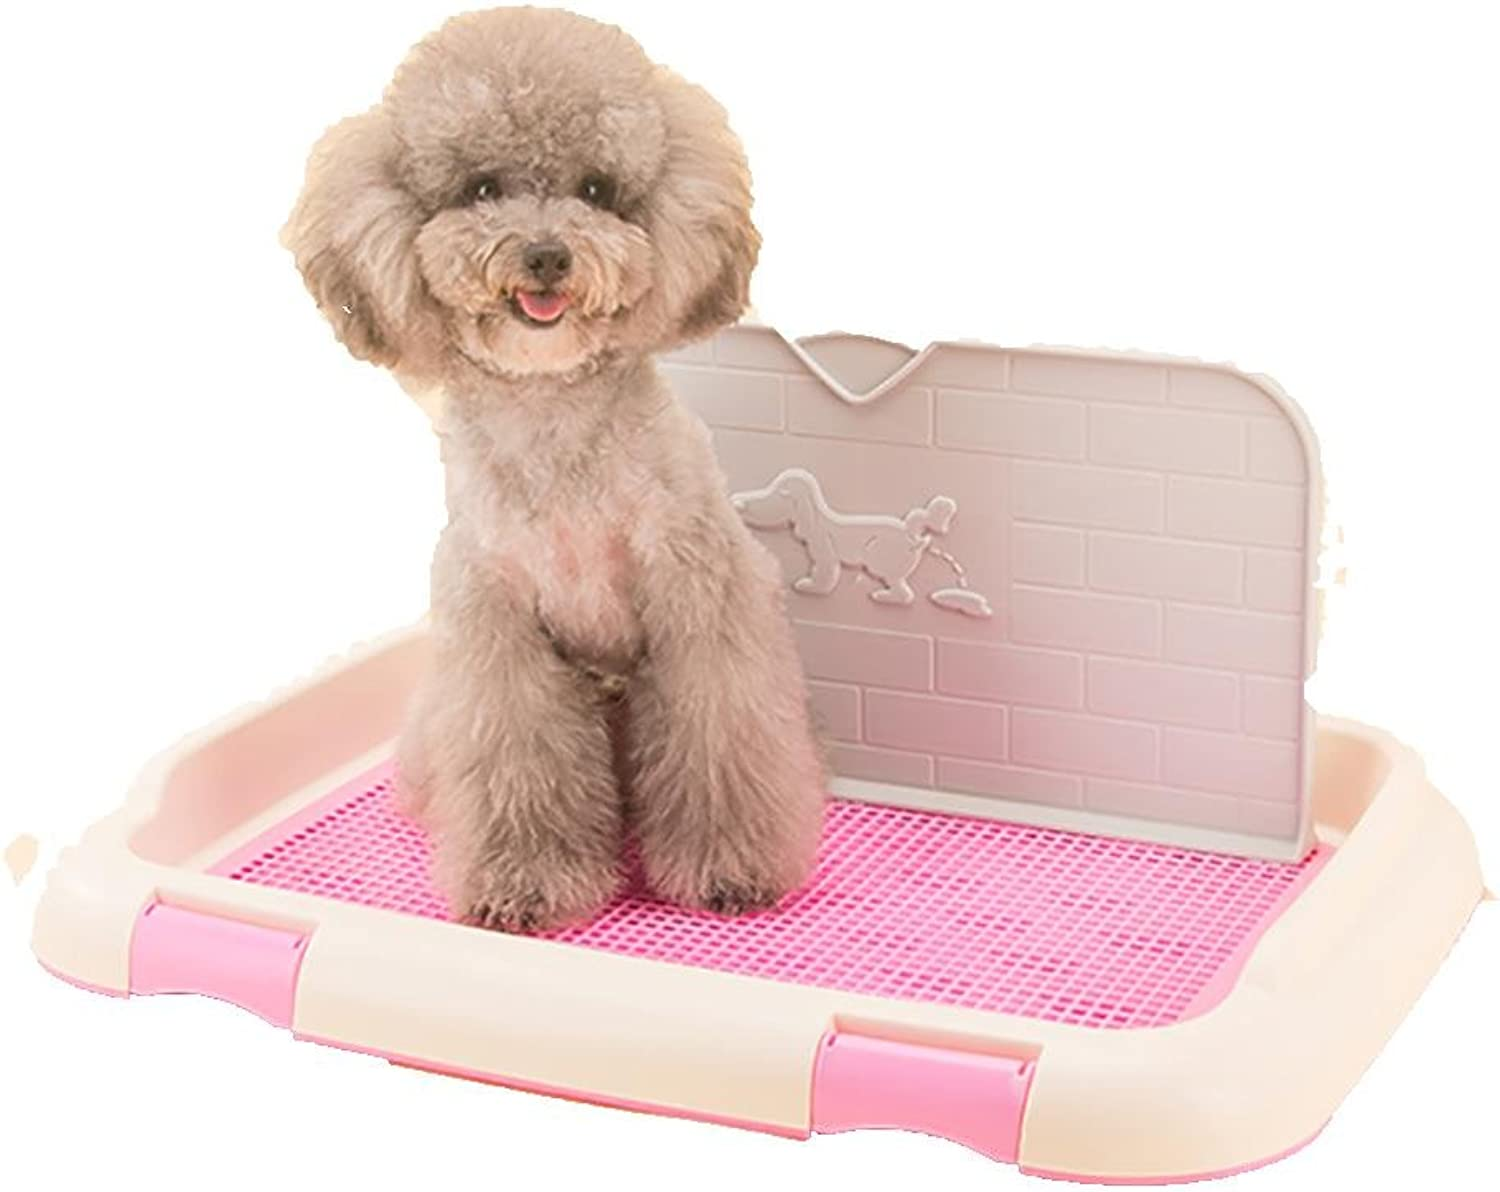 LYAQI Newest Design Indoor Outdoor Pet Potty Puppy Toilet with Simulation Wall